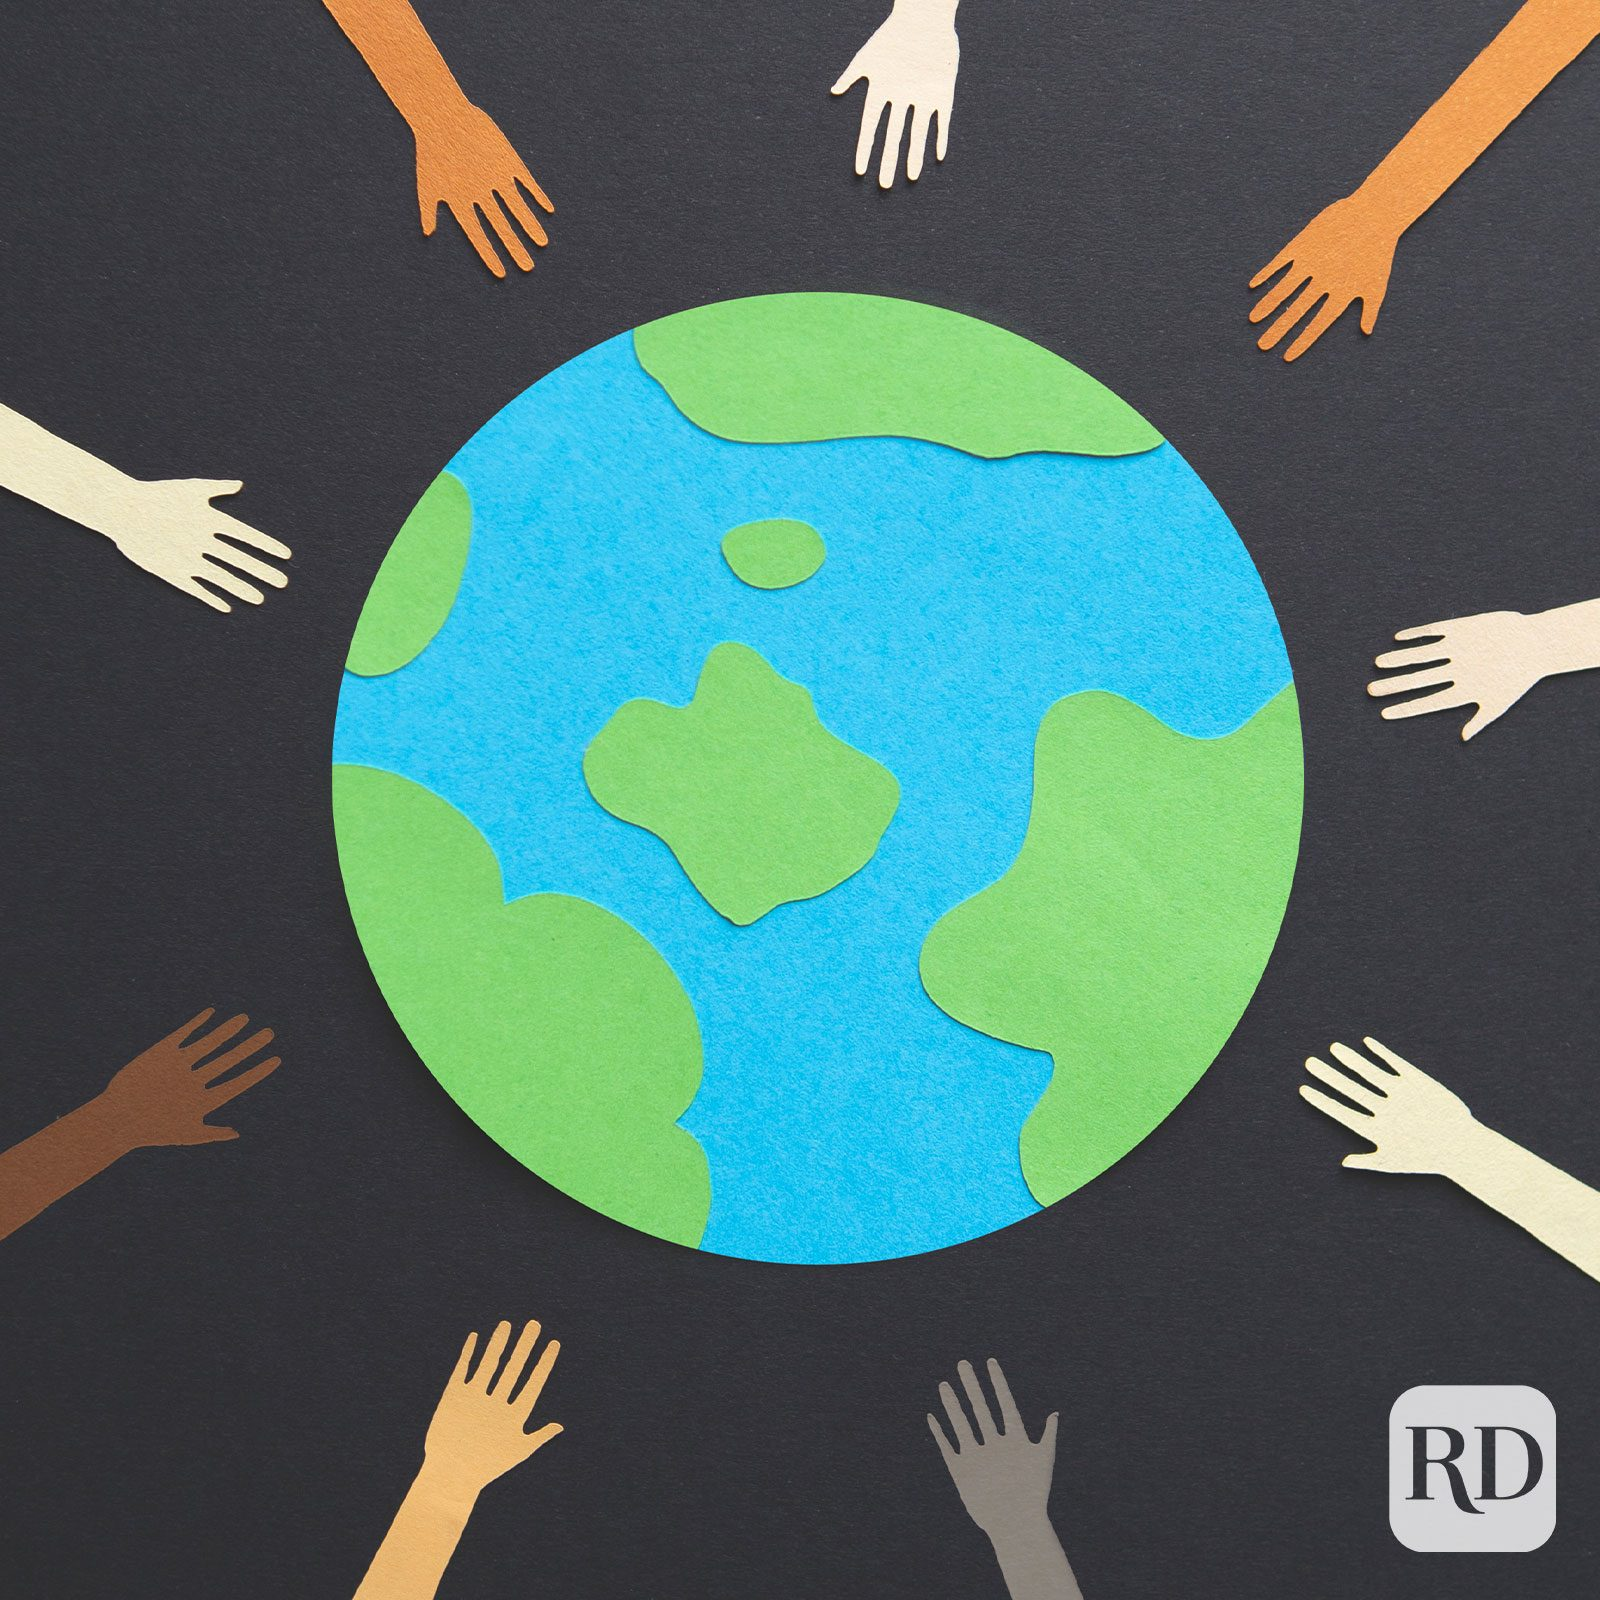 paper cutout of earth surrounded by tiny paper hands